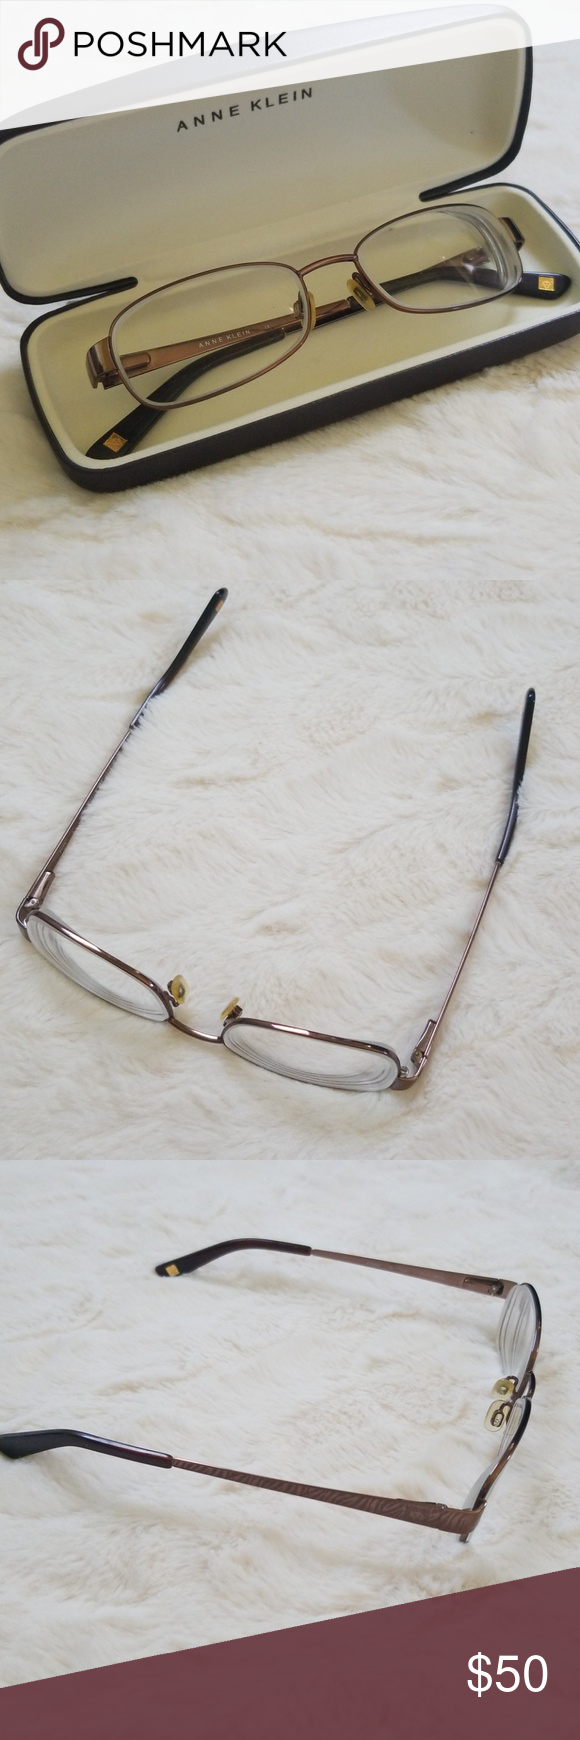 Anne Klein Glasses / Frames   Sprung hinges, Glass and Choices